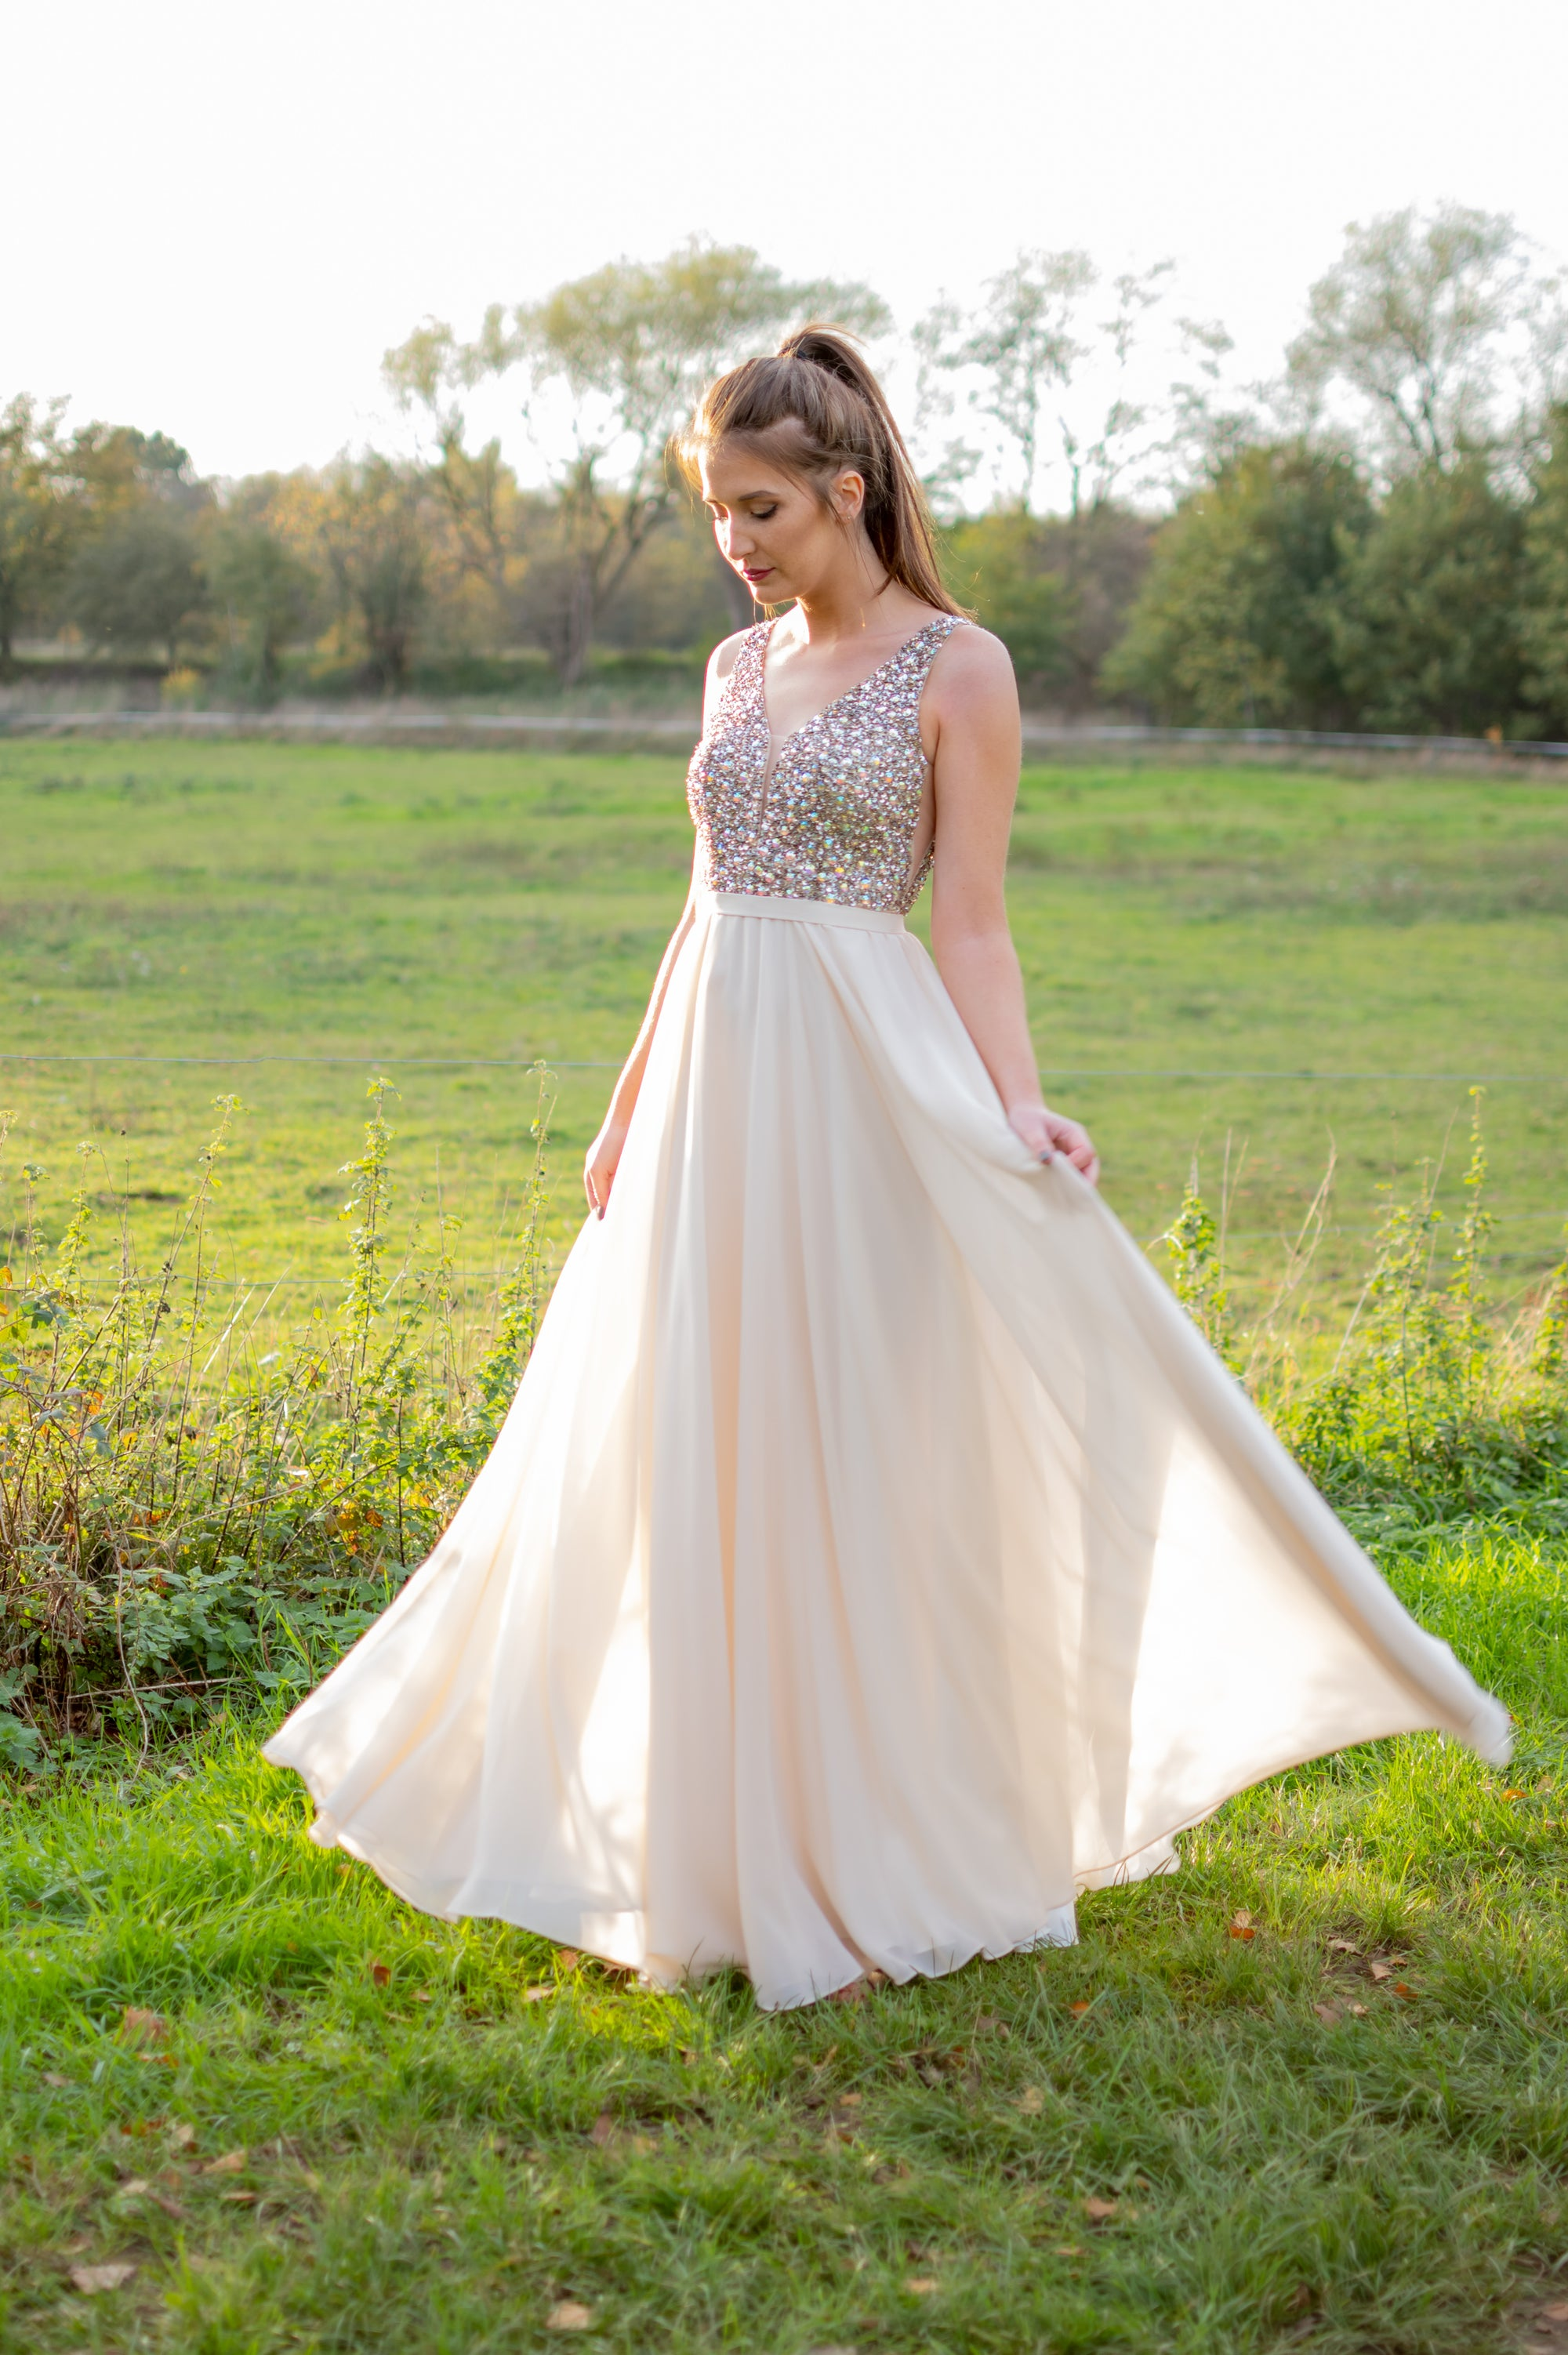 Hopes & Dreams Dress - Champagne